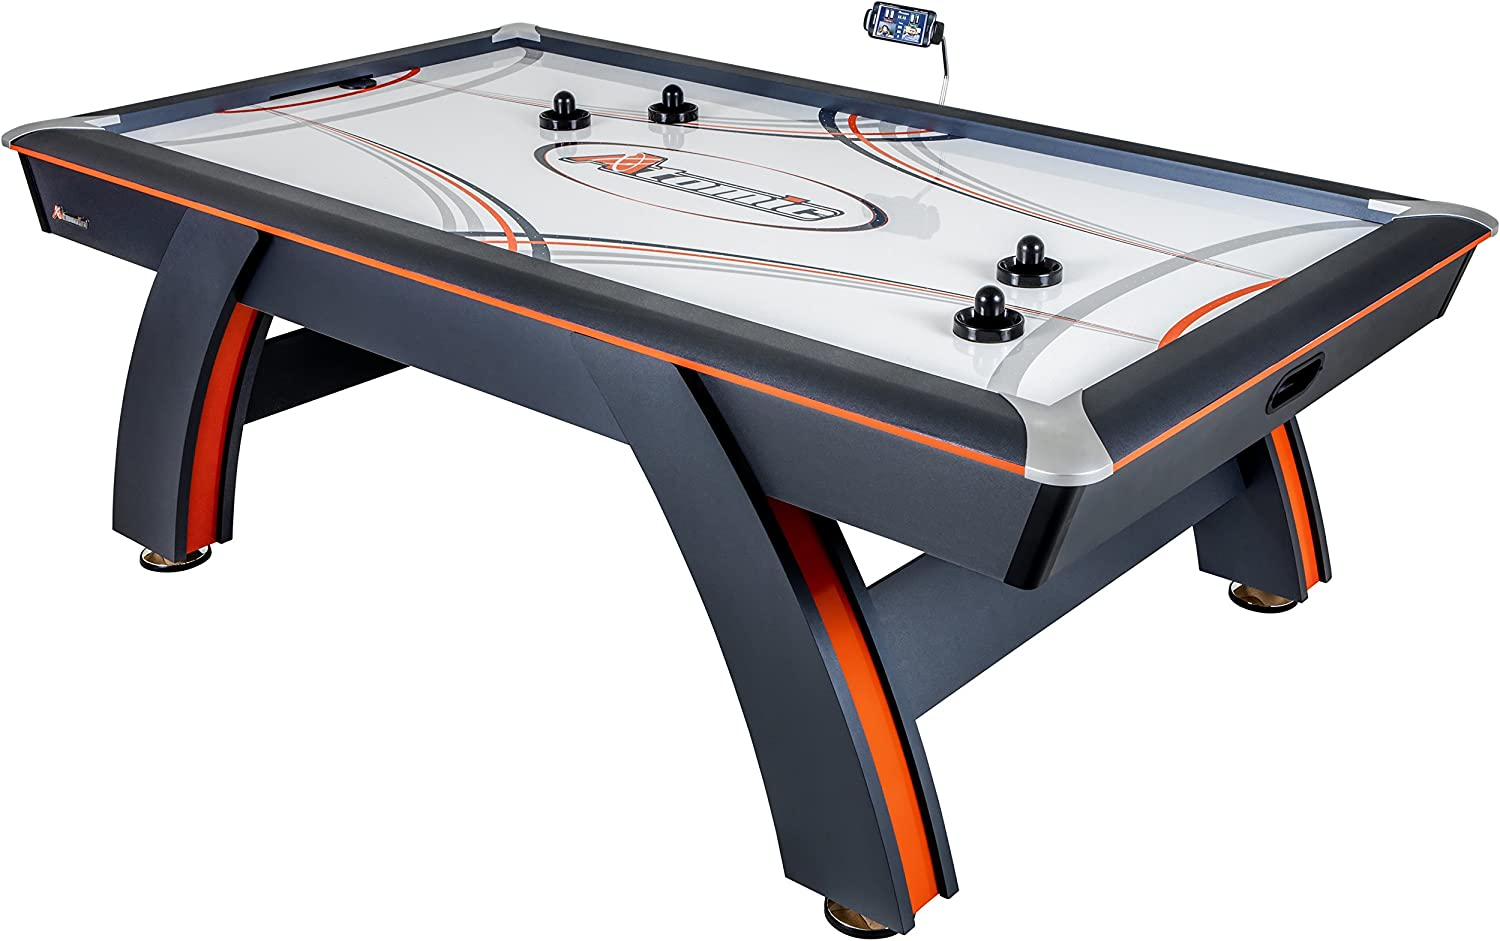 Top 10 Best Air Hockey Table for Kids (2020 Reviews & Guide) 1